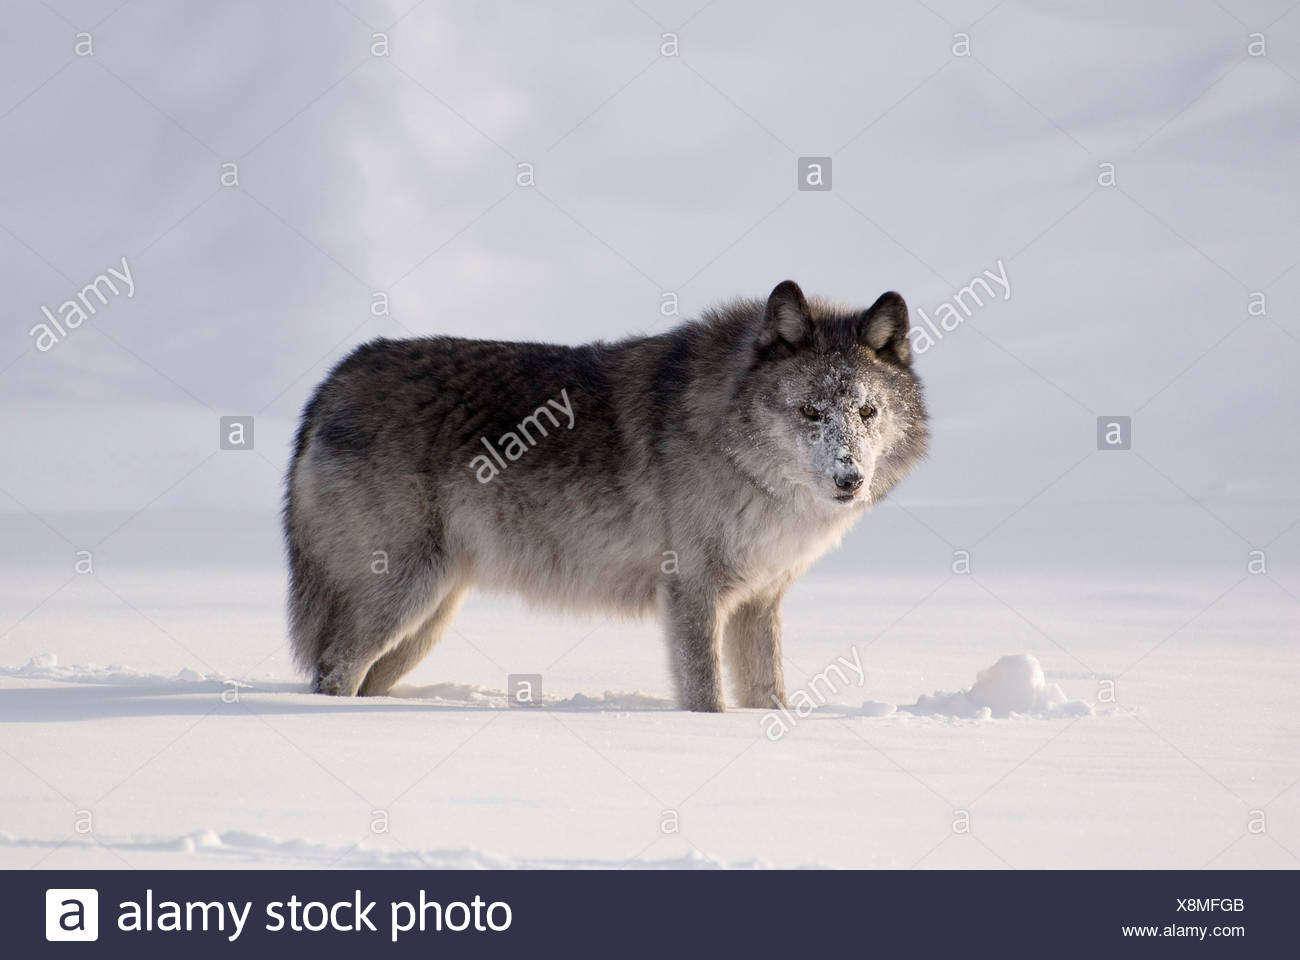 Wolf in the snow - Stock Image